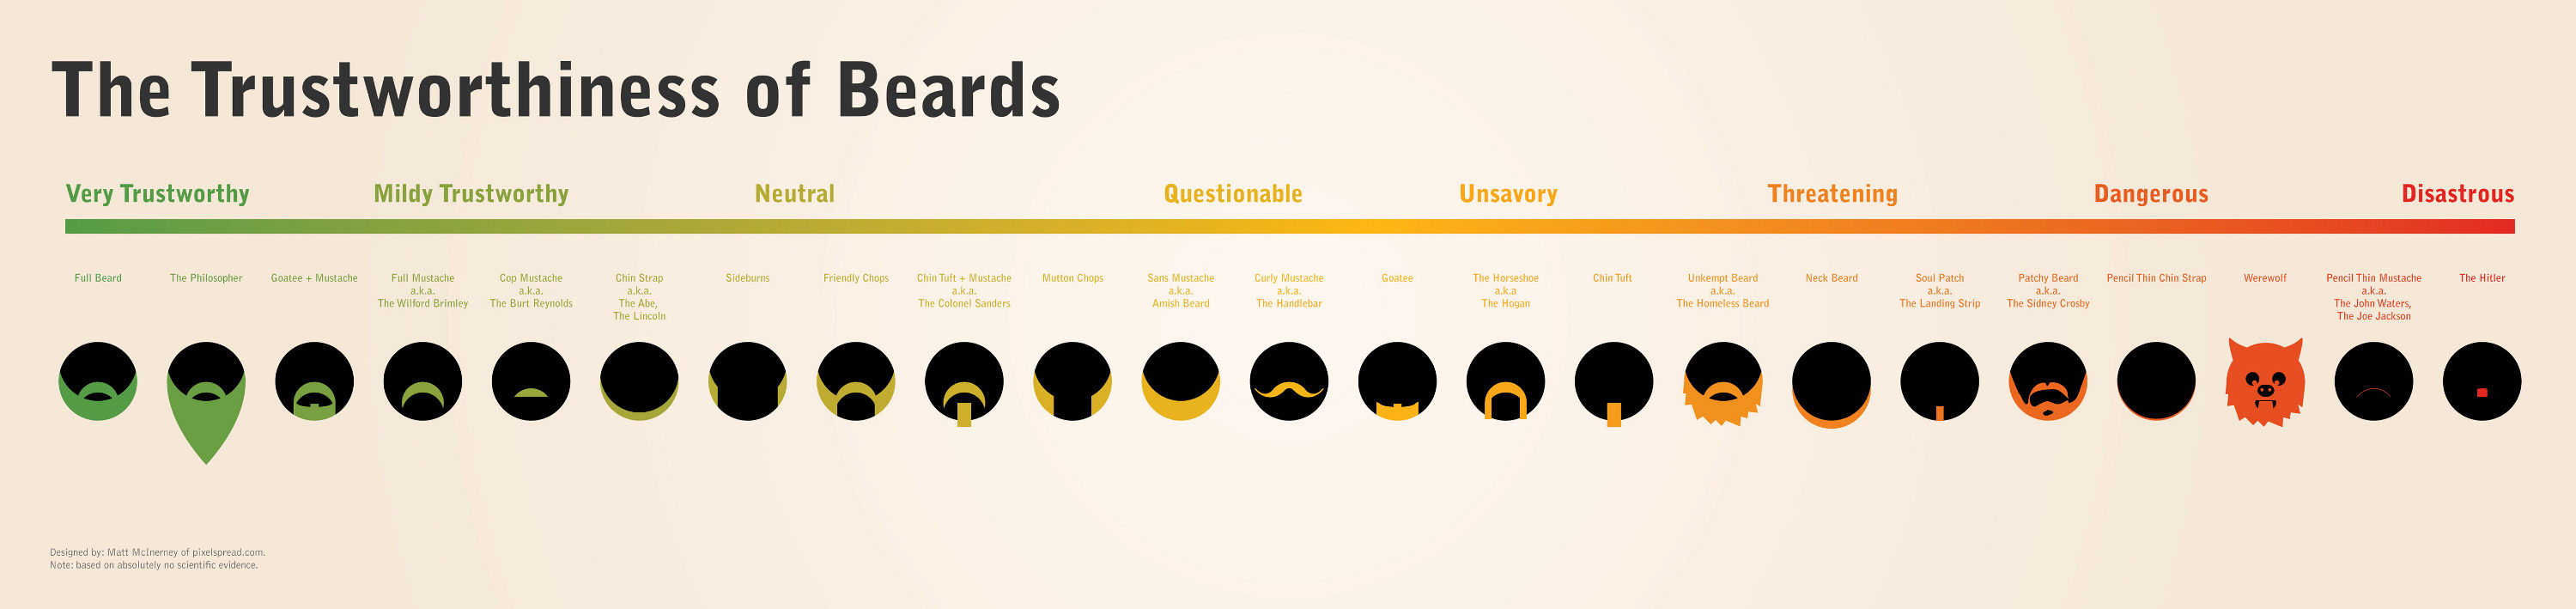 Trustworthiness of beards Infographic